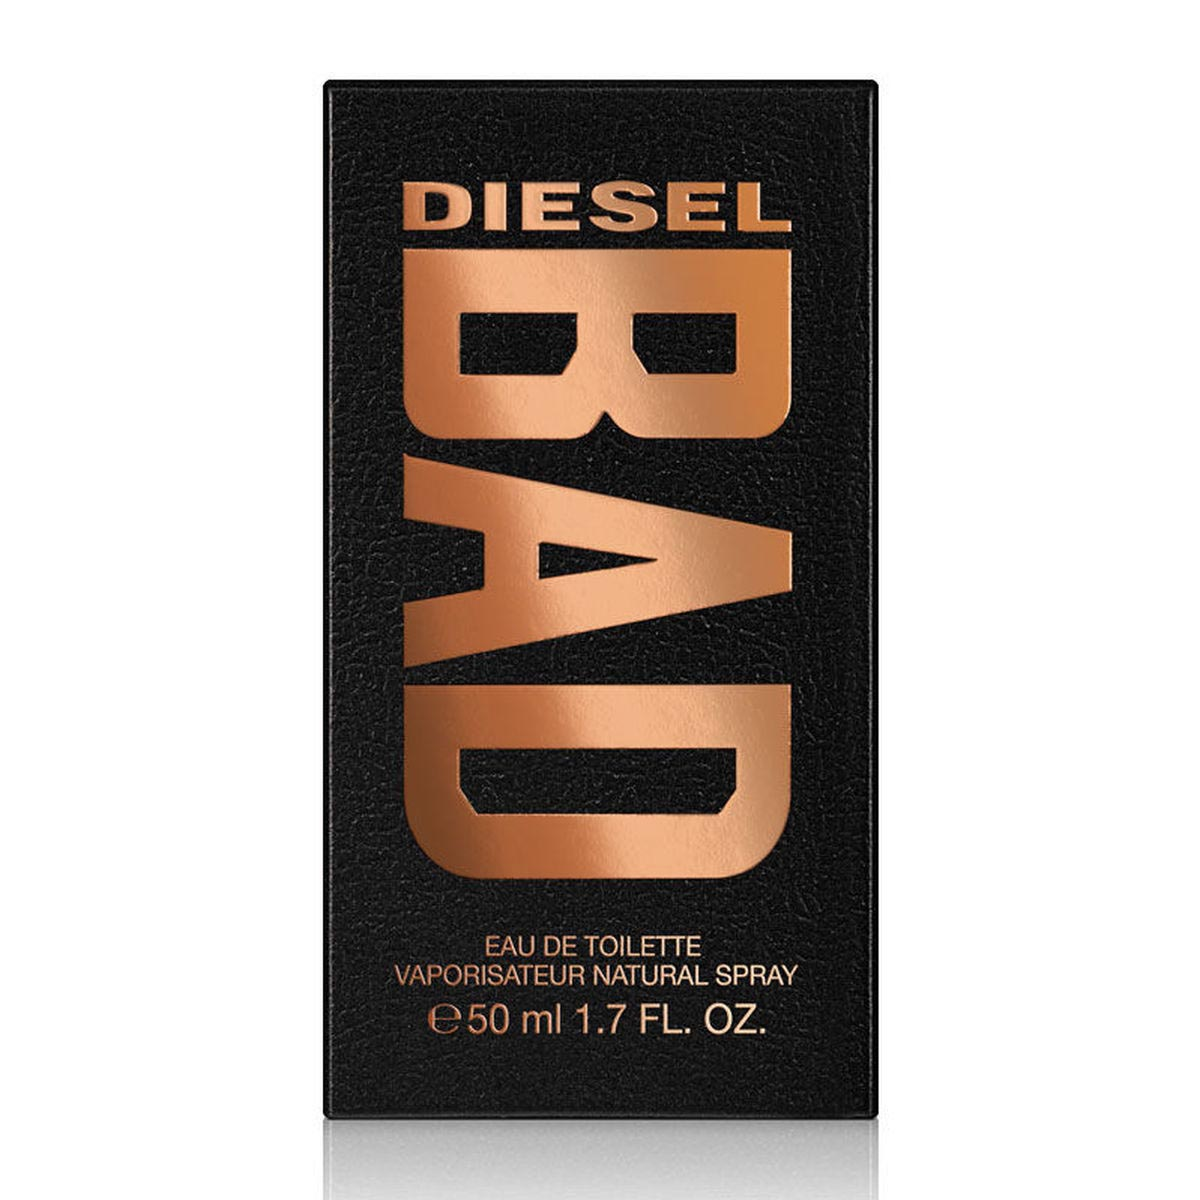 Diesel bad eau de toilette 125ml vaporizador